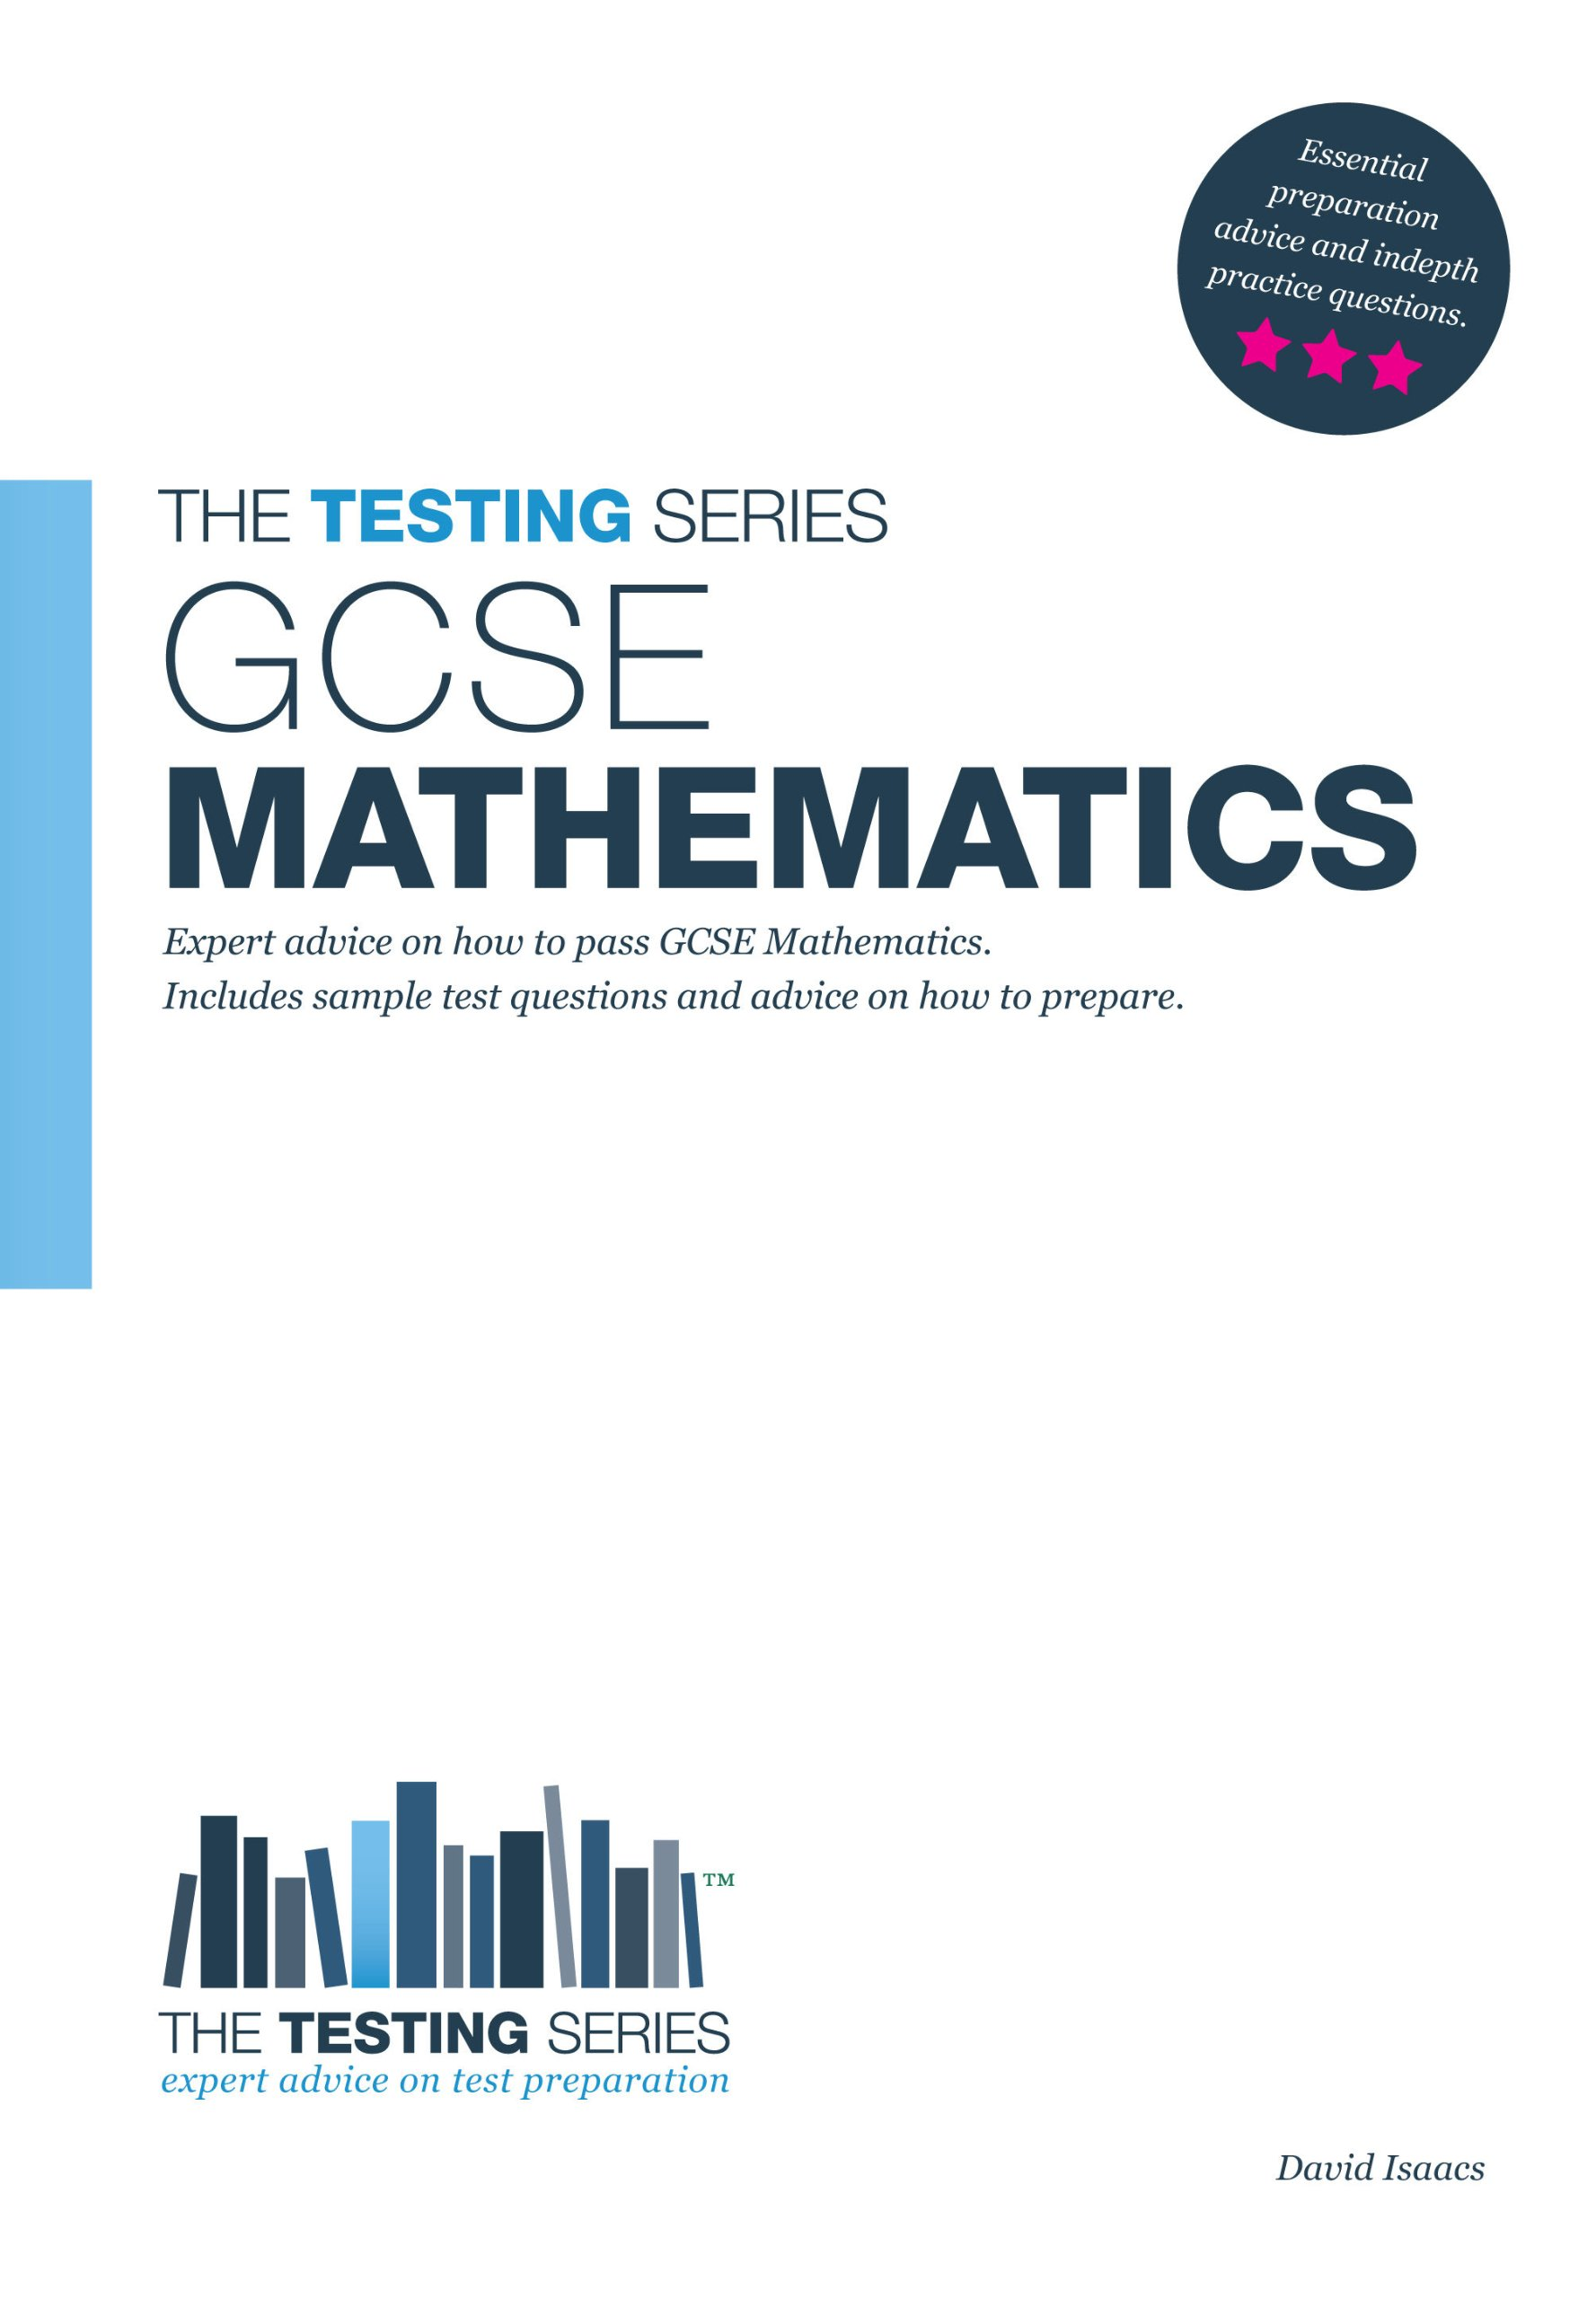 Download GCSE Mathematics: How to Pass it with High Grades - Sample Test Questions and Answers (Testing Series) pdf